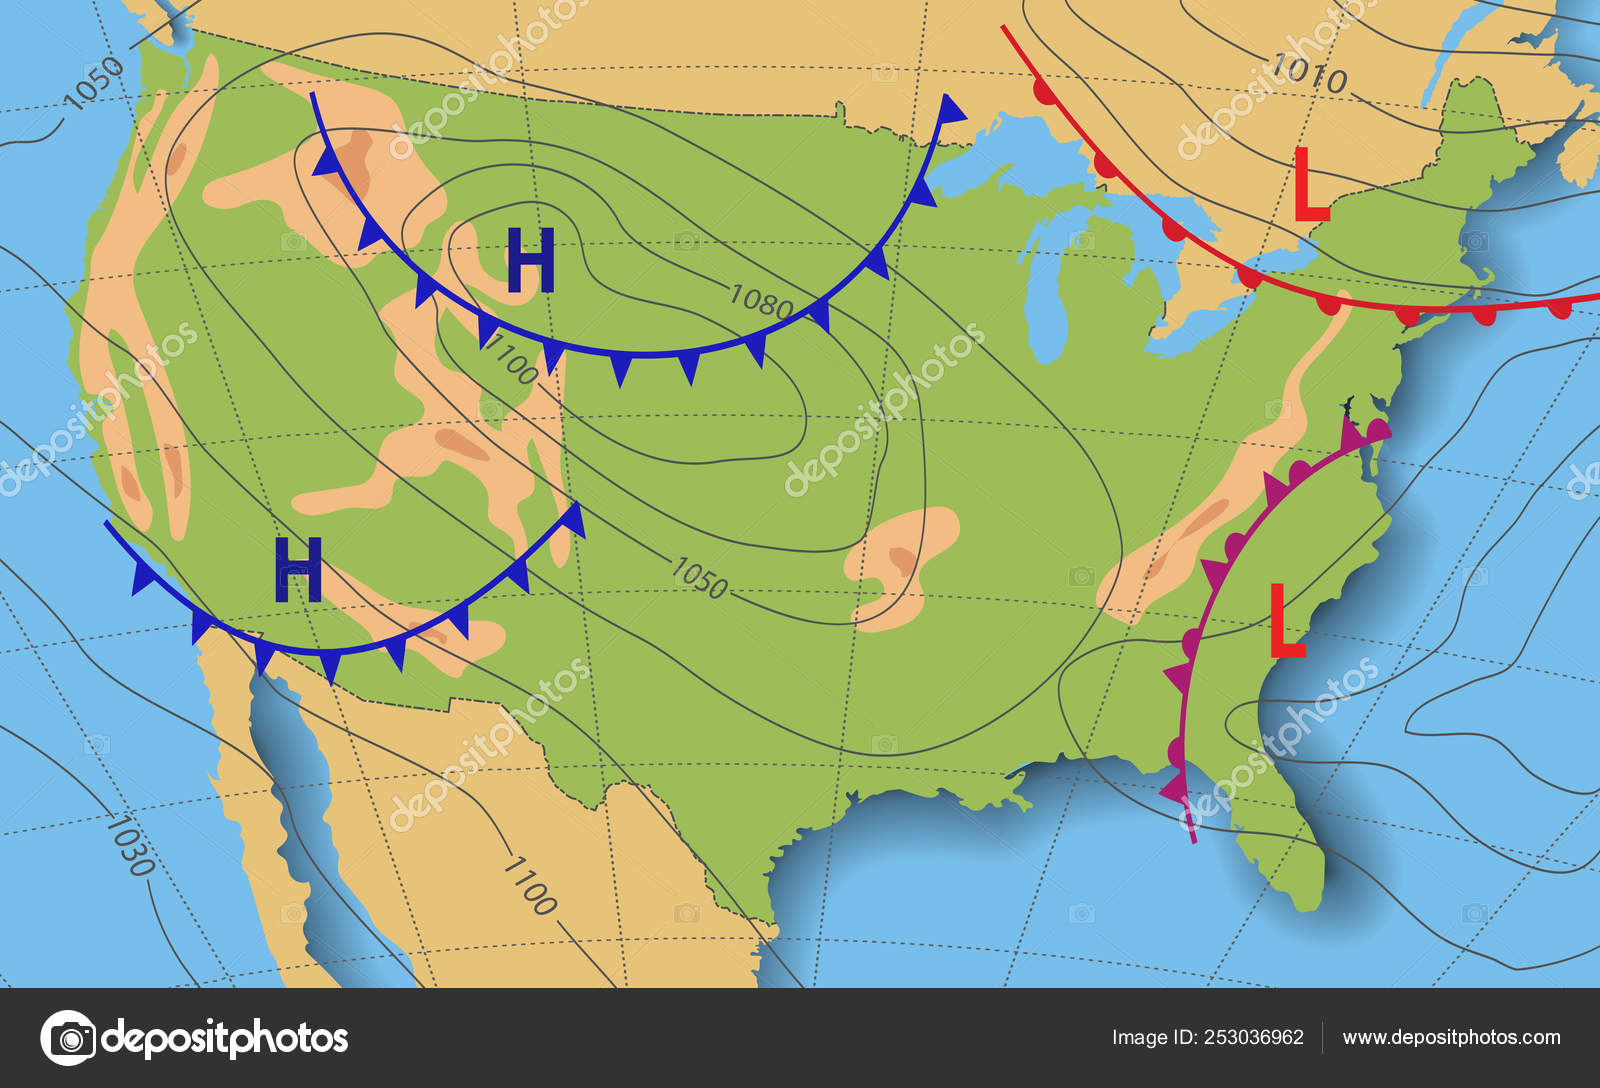 Image of: Weather Forecast Meteorological Weather Map Of The United State Of America Realistic Synoptic Map Usa With Aditable Generic Map Showing Isobars And Weather Fronts Topography And Physical Map Stock Vector C